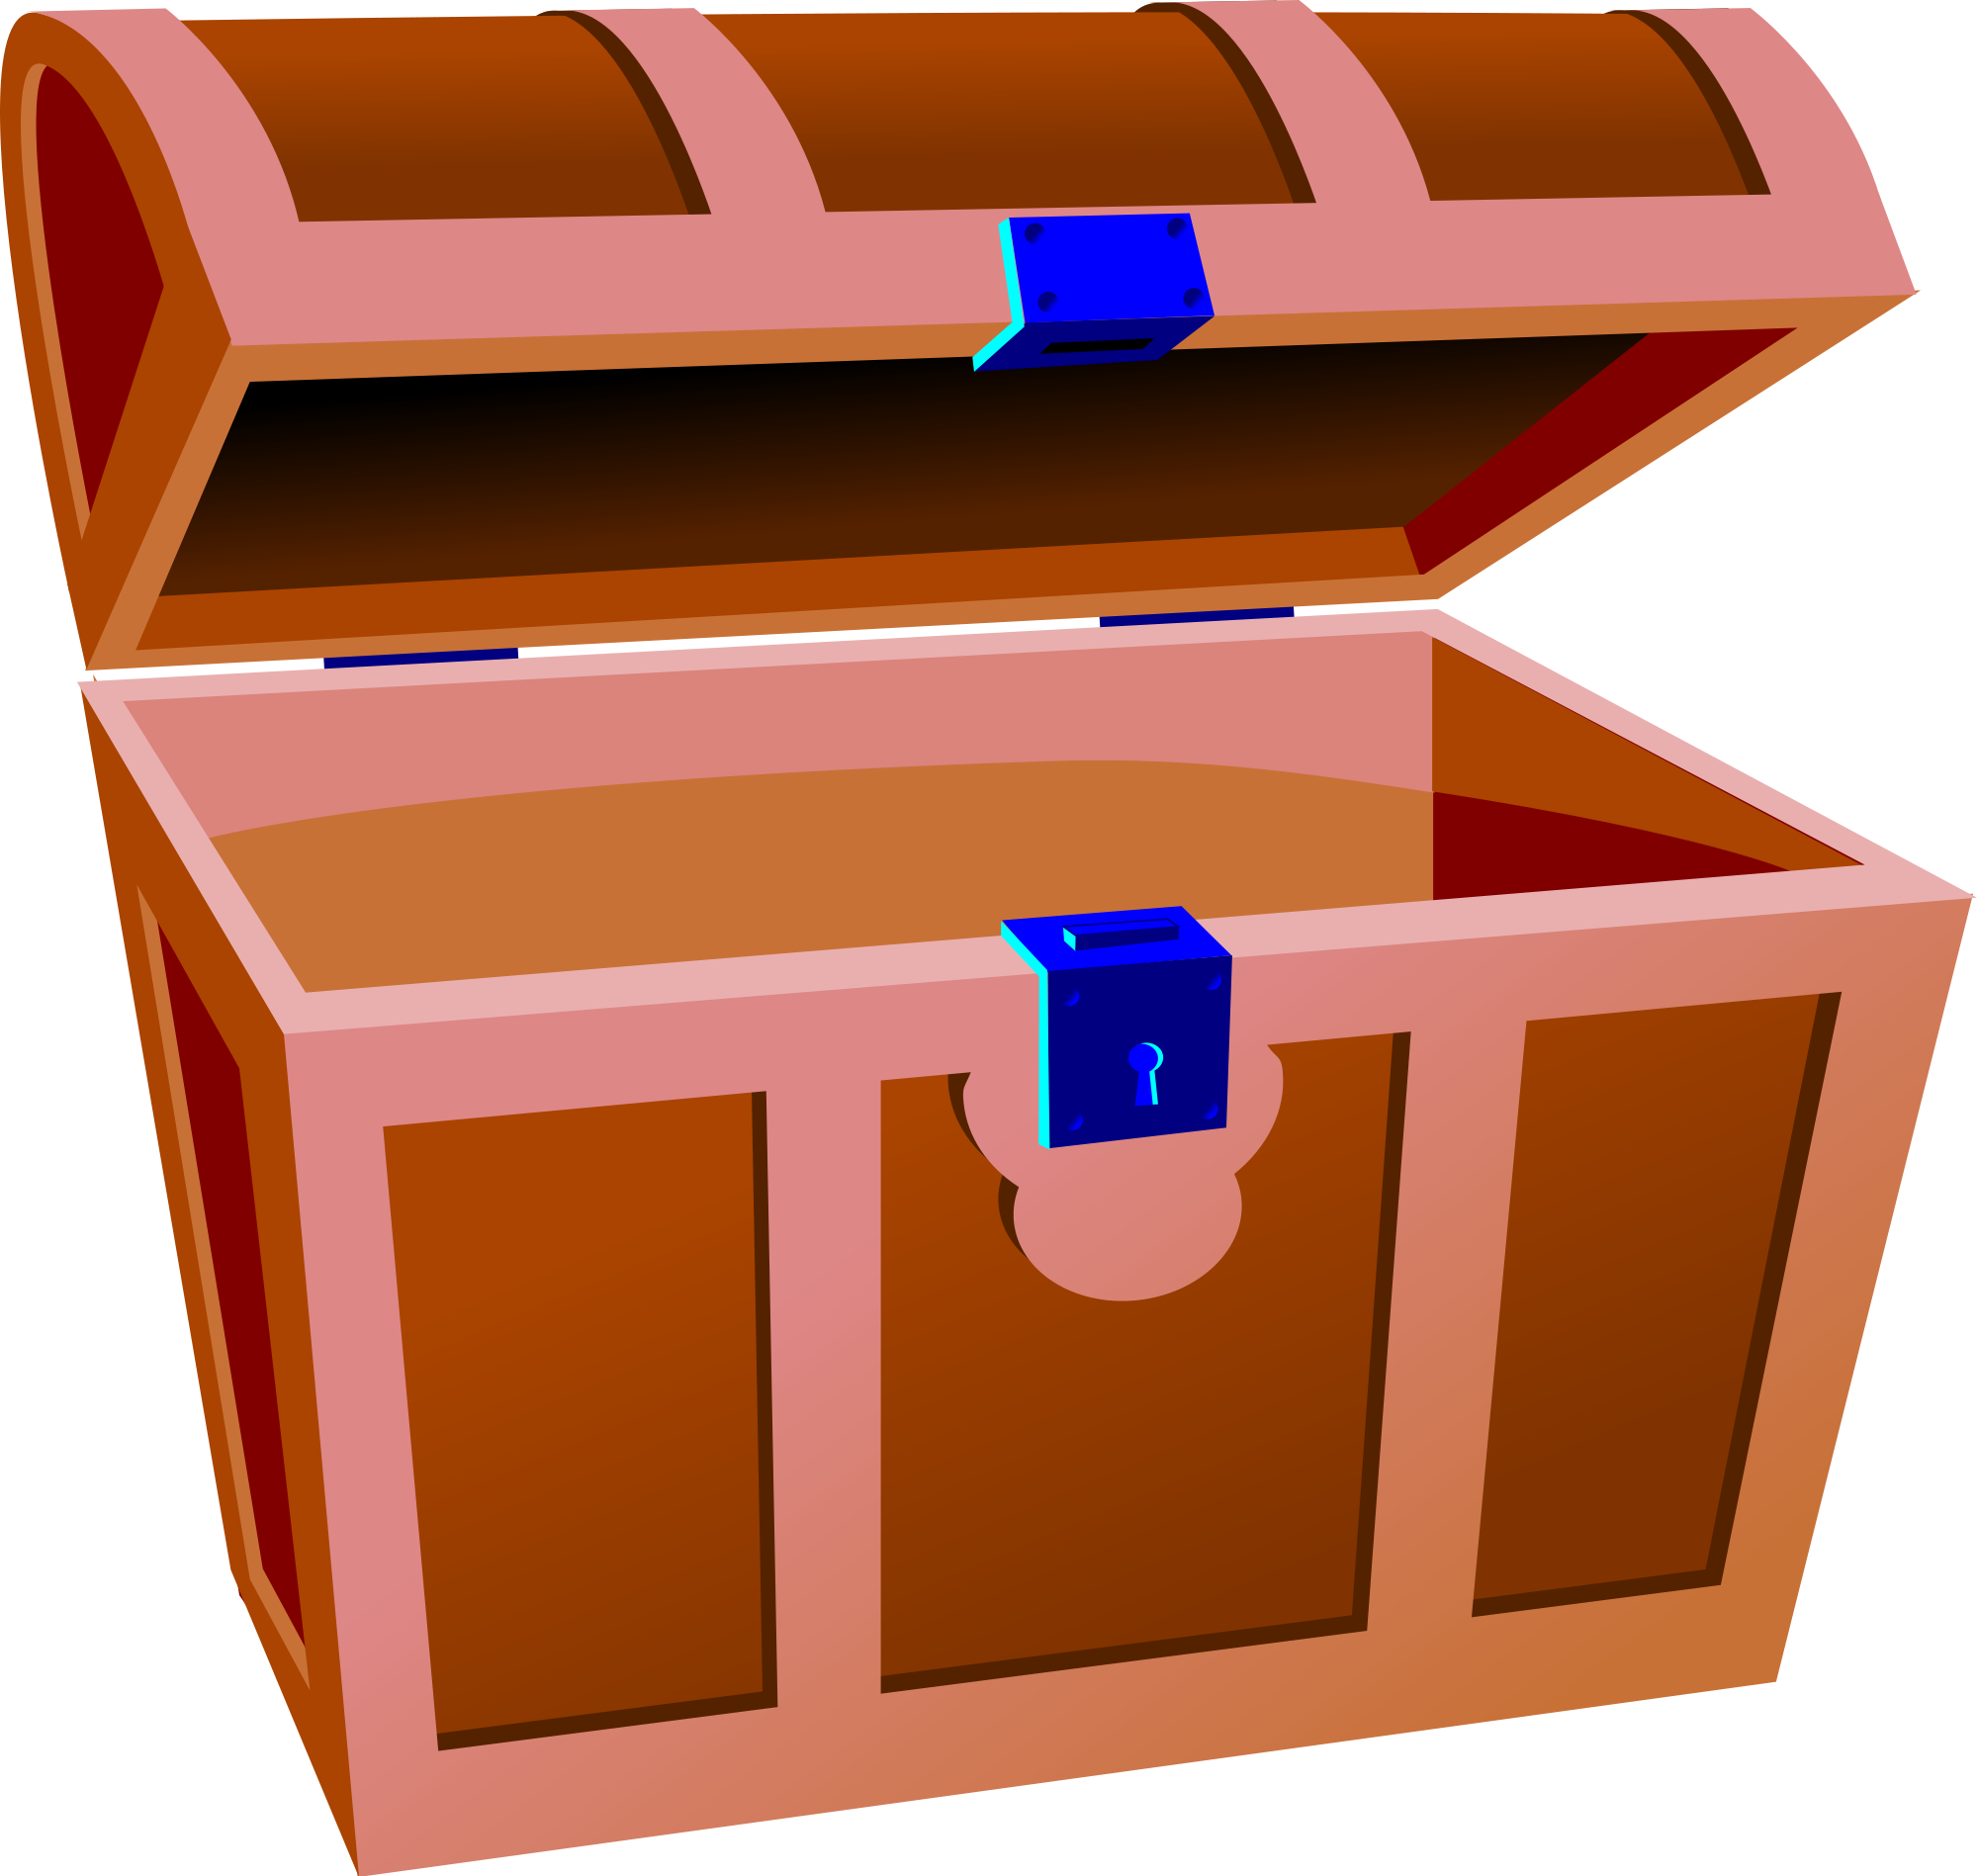 Treasure clipart community chest. File svg wikimedia commons